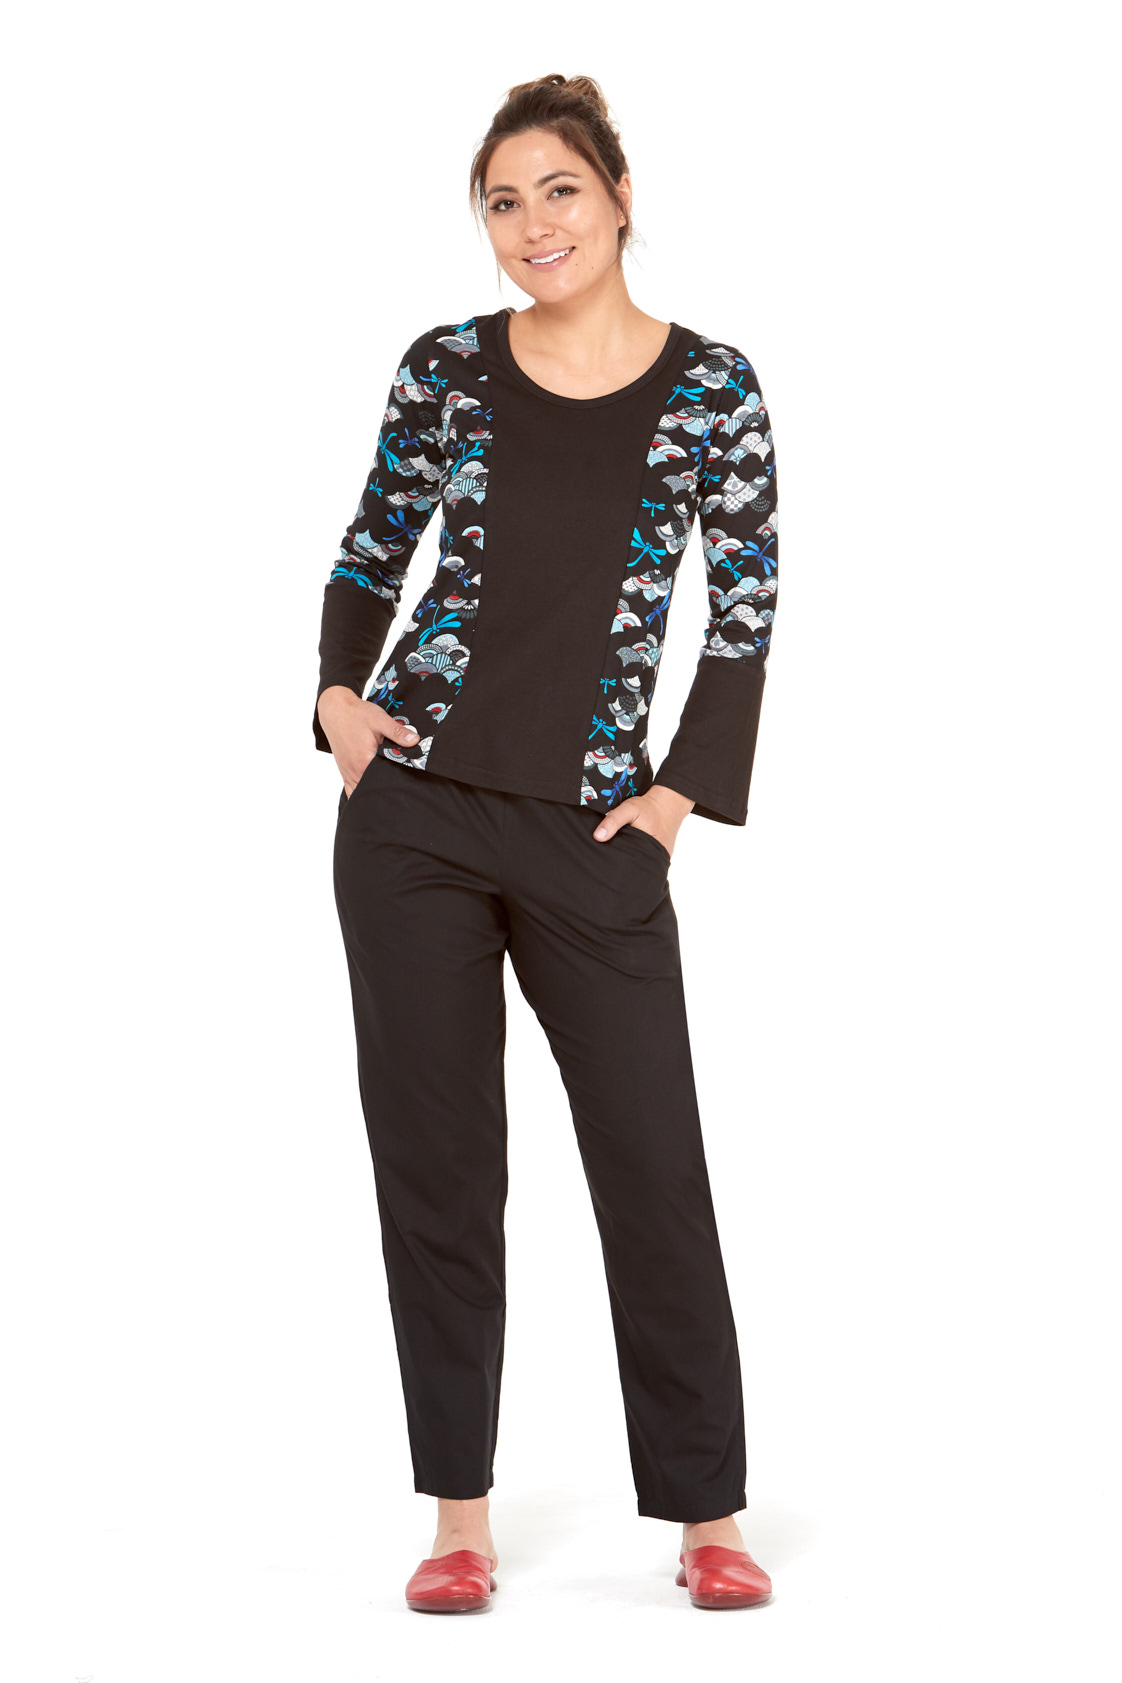 Matilde Cotton Top - Kobe Print with Plain Black